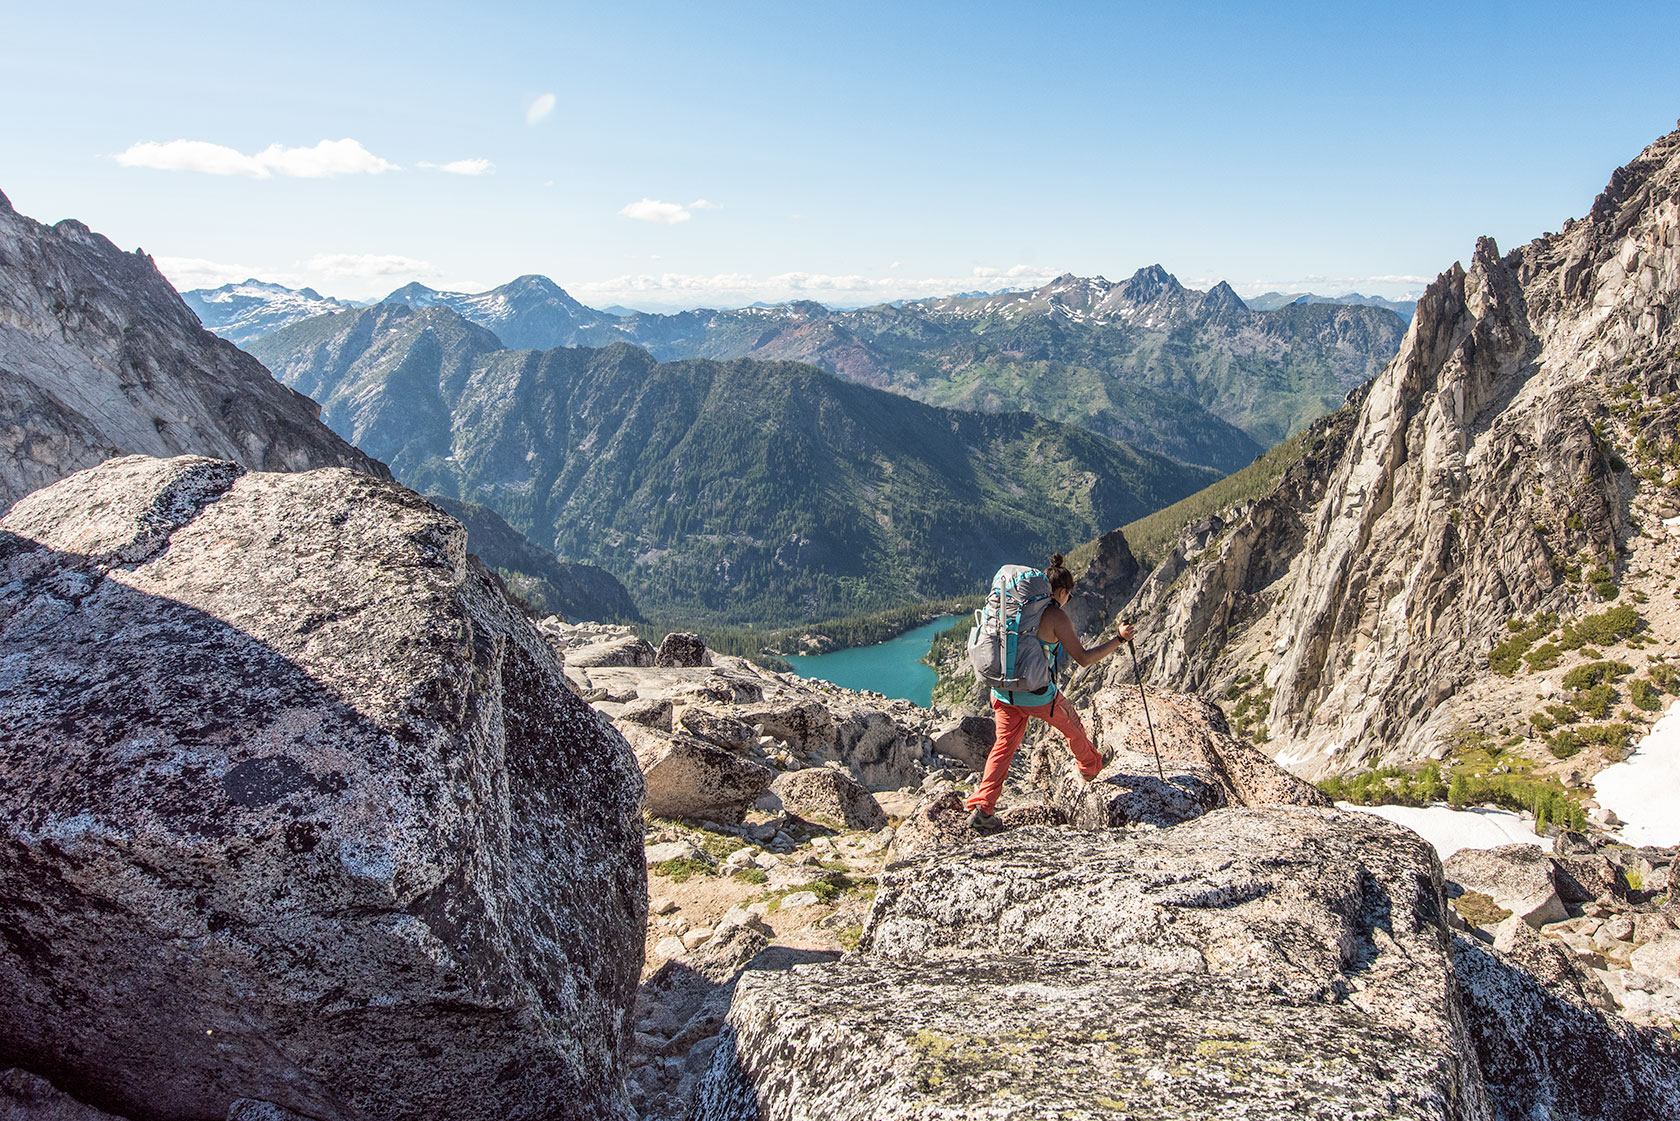 austin-trigg-osprey-hiking-backpacks-hike-camp-washington-adventure-lifestyle-outdoor-enchantments-alpine-lakes-wilderness-rock-jumping.jpg